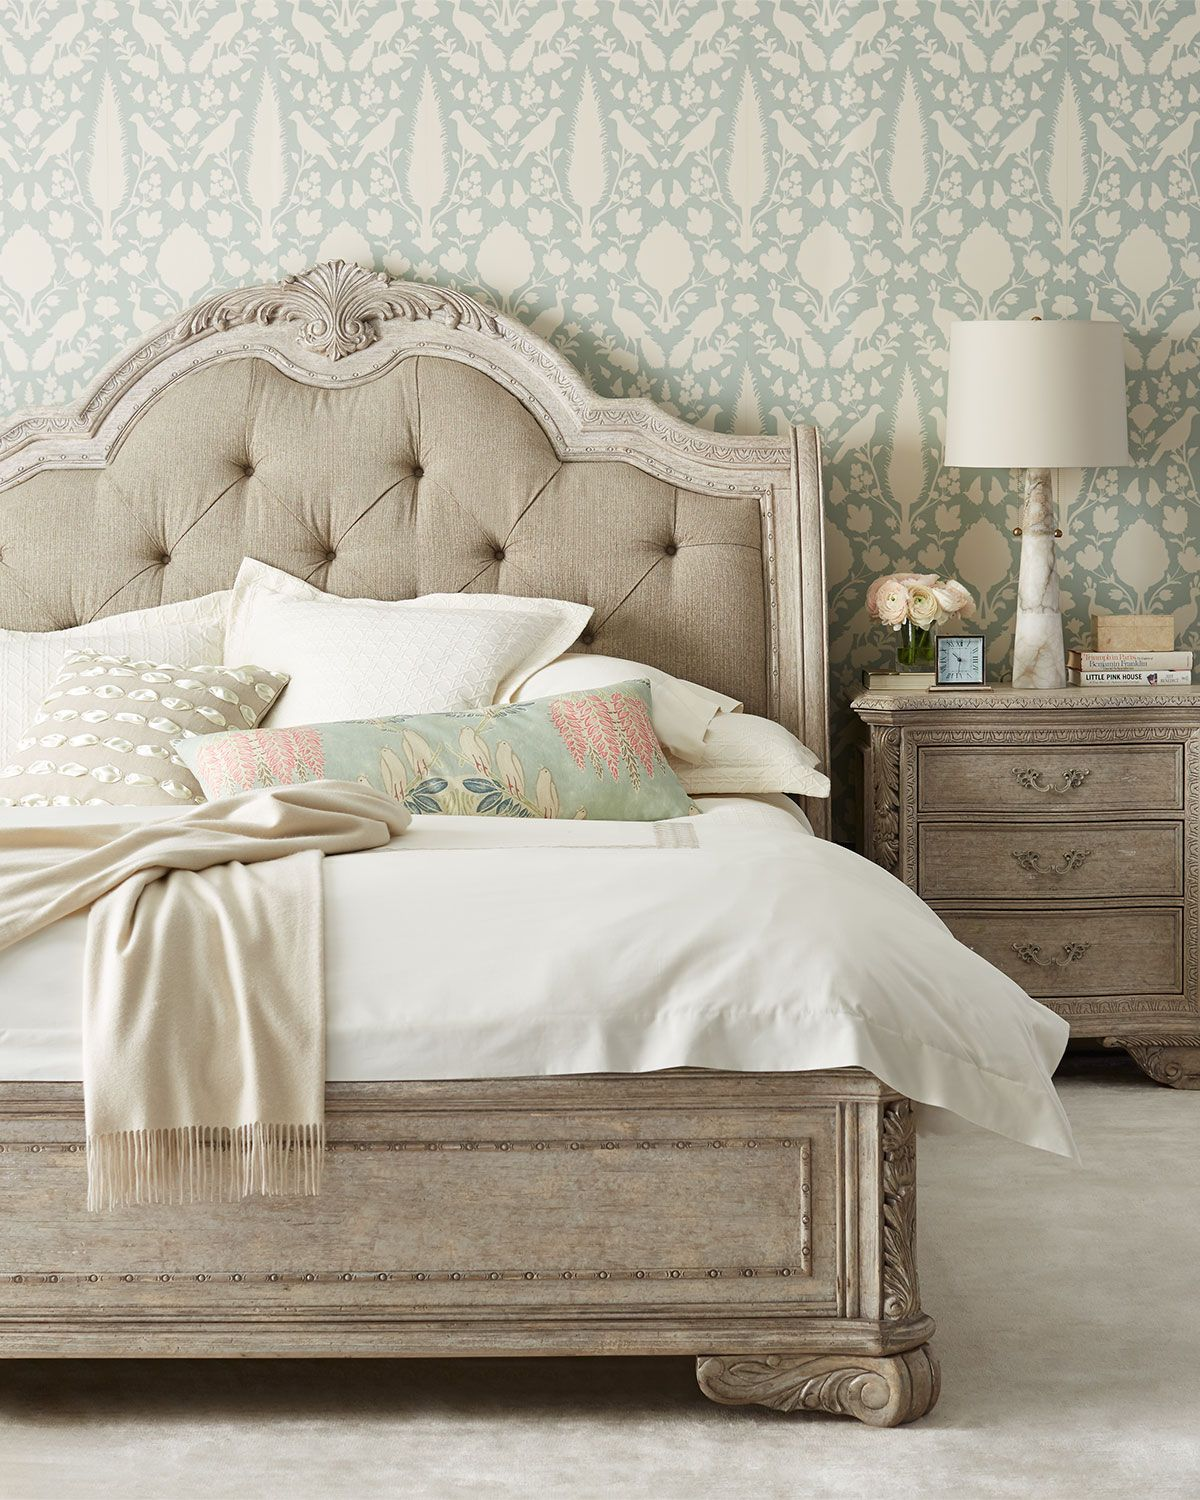 Camilla Bedroom Furniture Country Bedroom Decor French Country Decorating Bedroom Country Bedroom Furniture